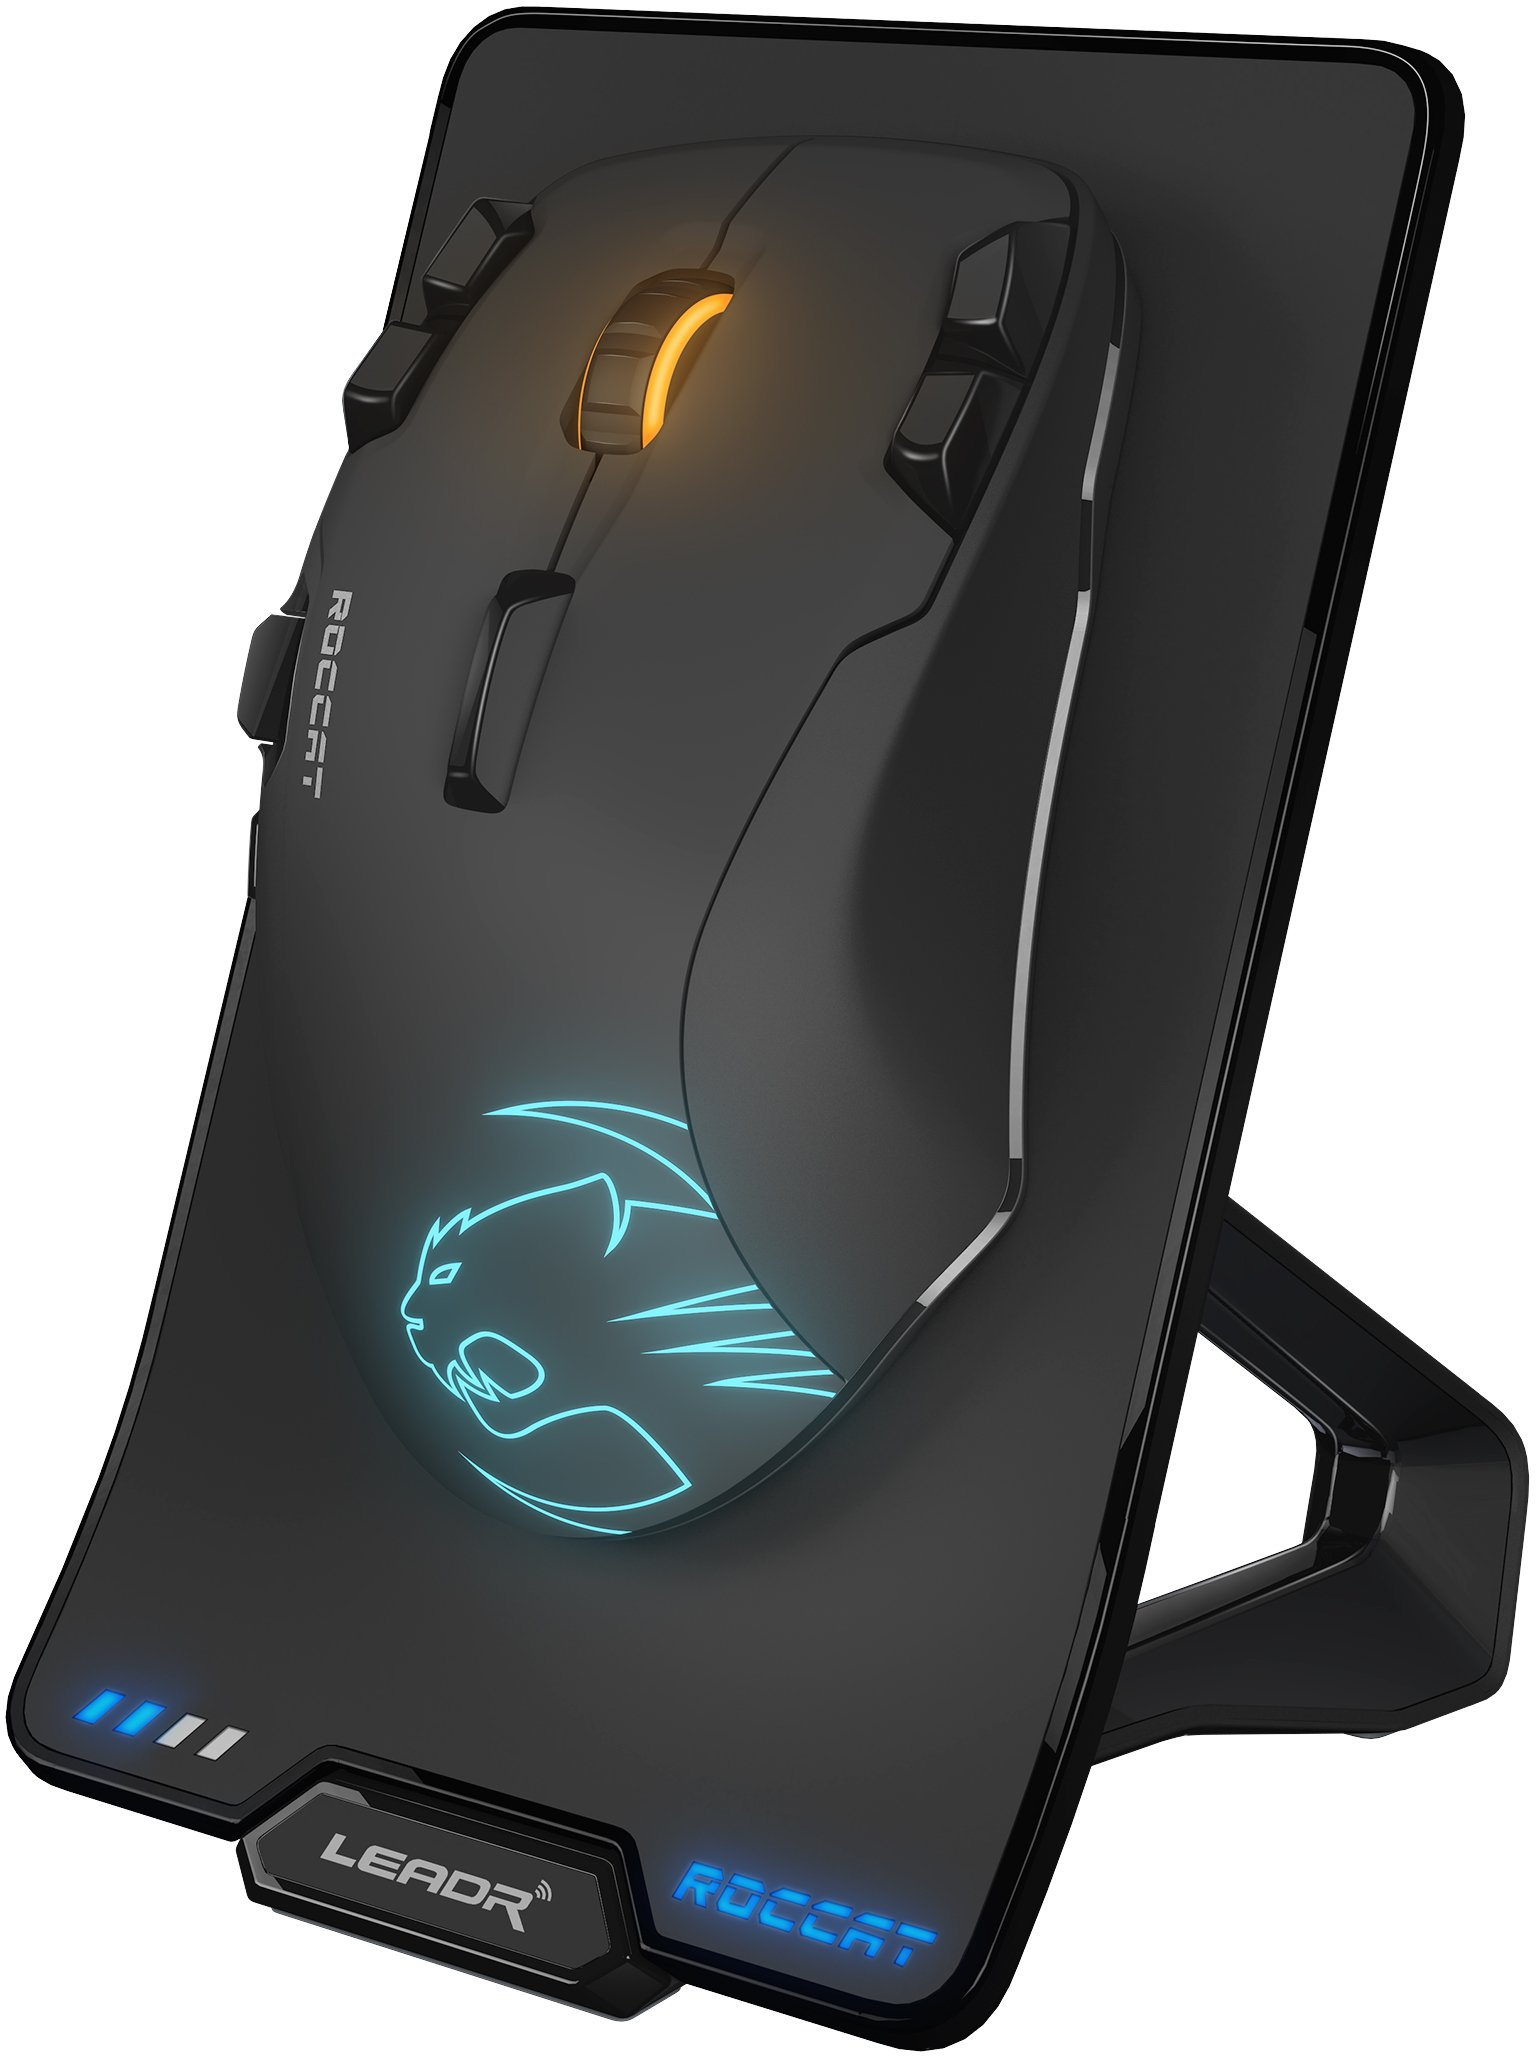 Mouse Gamer : Roccat Roc-11-852 Leadr Sin Cable/con Cable Op